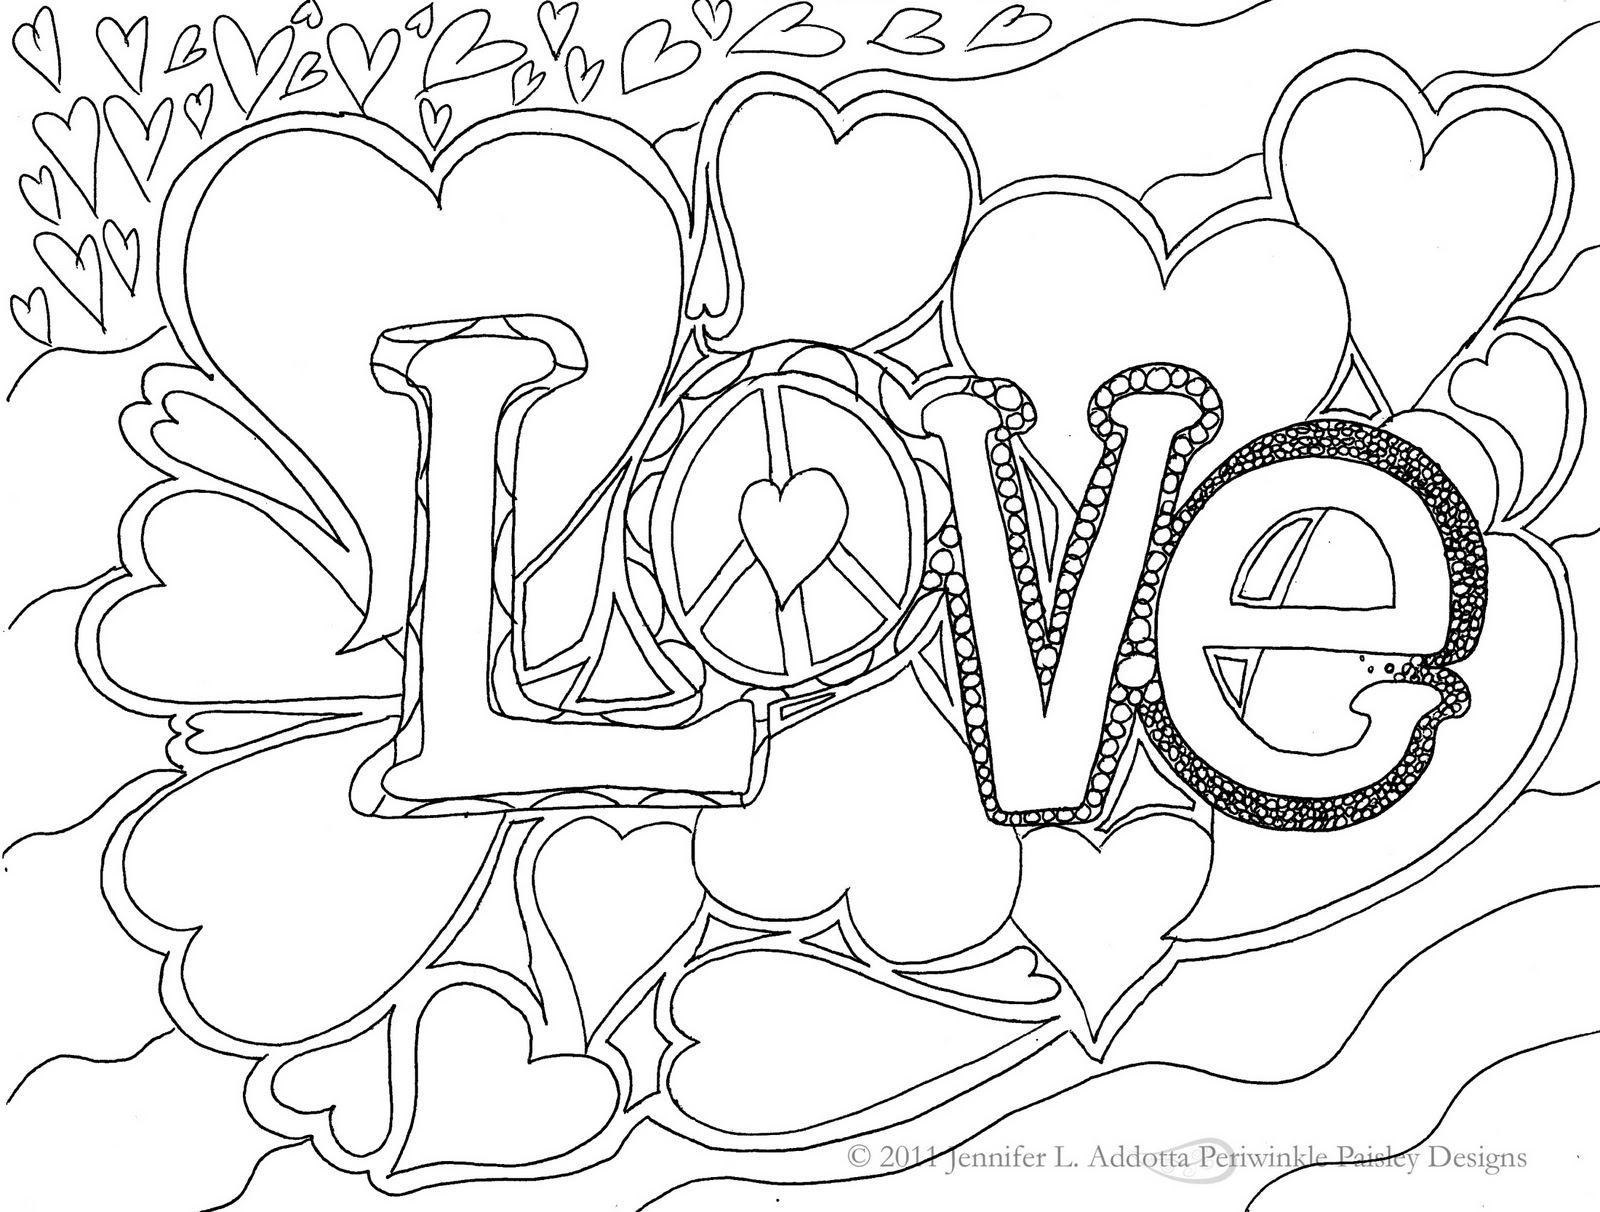 Printable coloring pages for teenagers - Cool Coloring Pages Cool Coloring Pages Printable